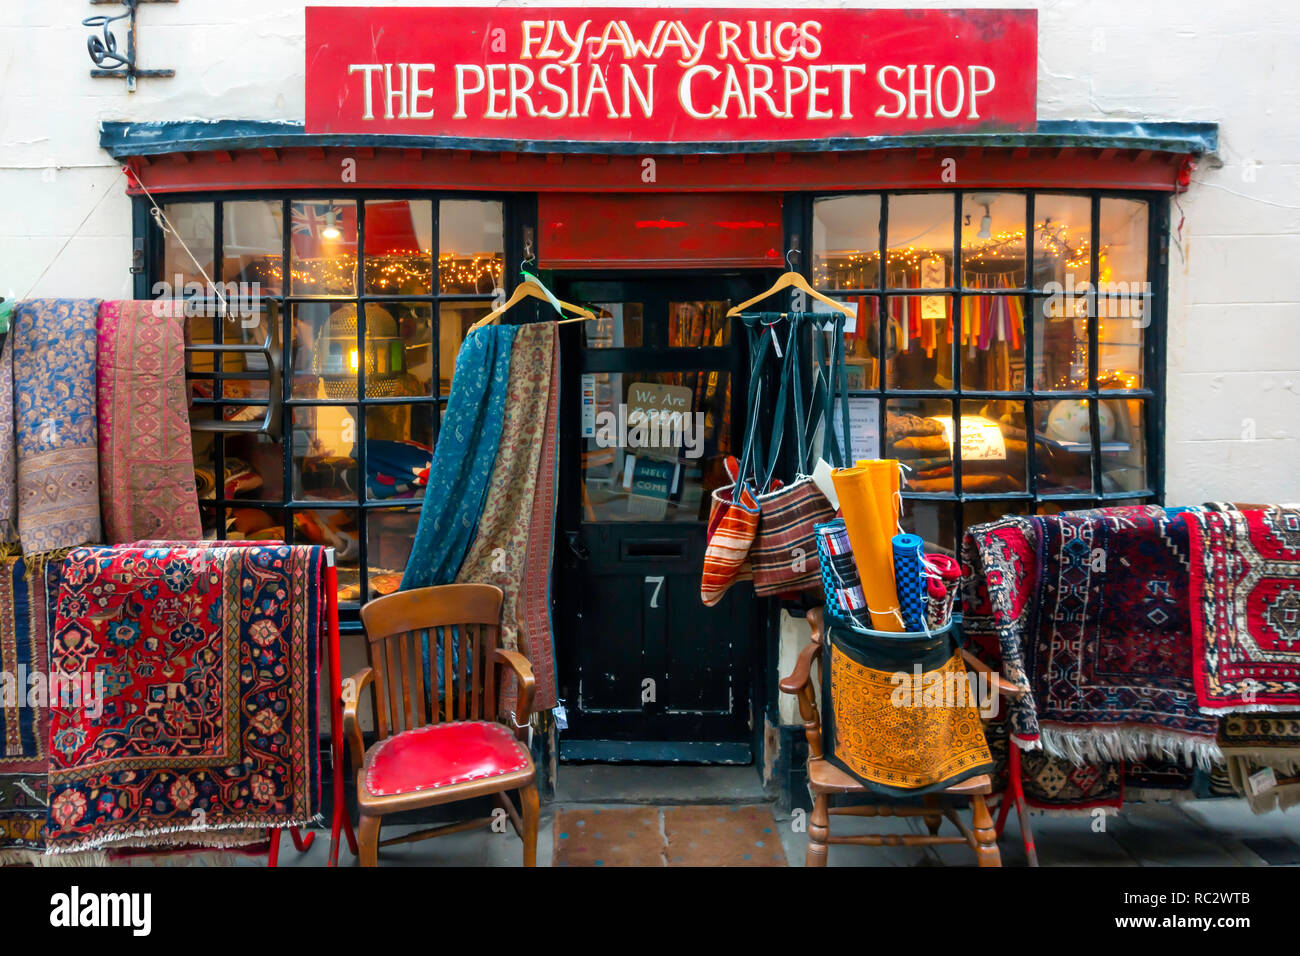 Fly away Rugs a shop selling Persian, Arabic and Middle Eastern carpets rugs and bags in Whitby North Yorkshire UK - Stock Image